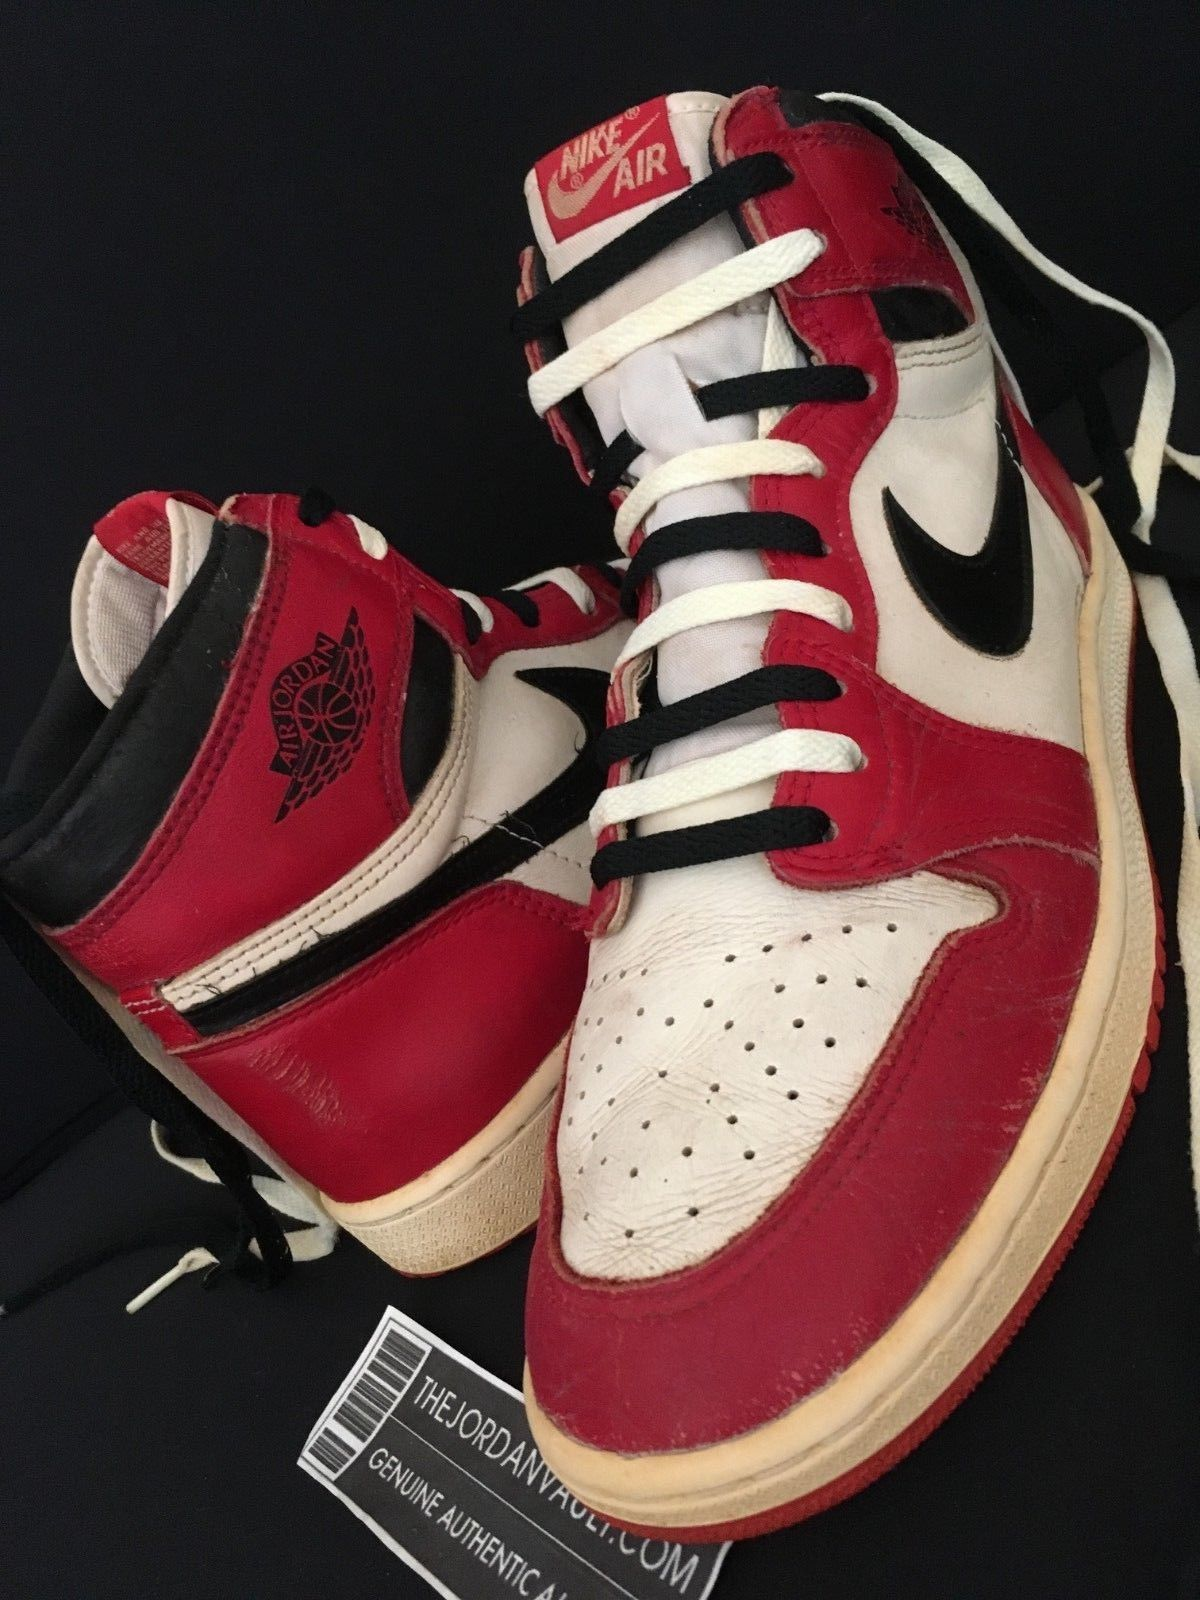 cheap for discount 75662 99ac7 1985 Nike Air Jordan 1 Original White Black Red Chicago sz. 12